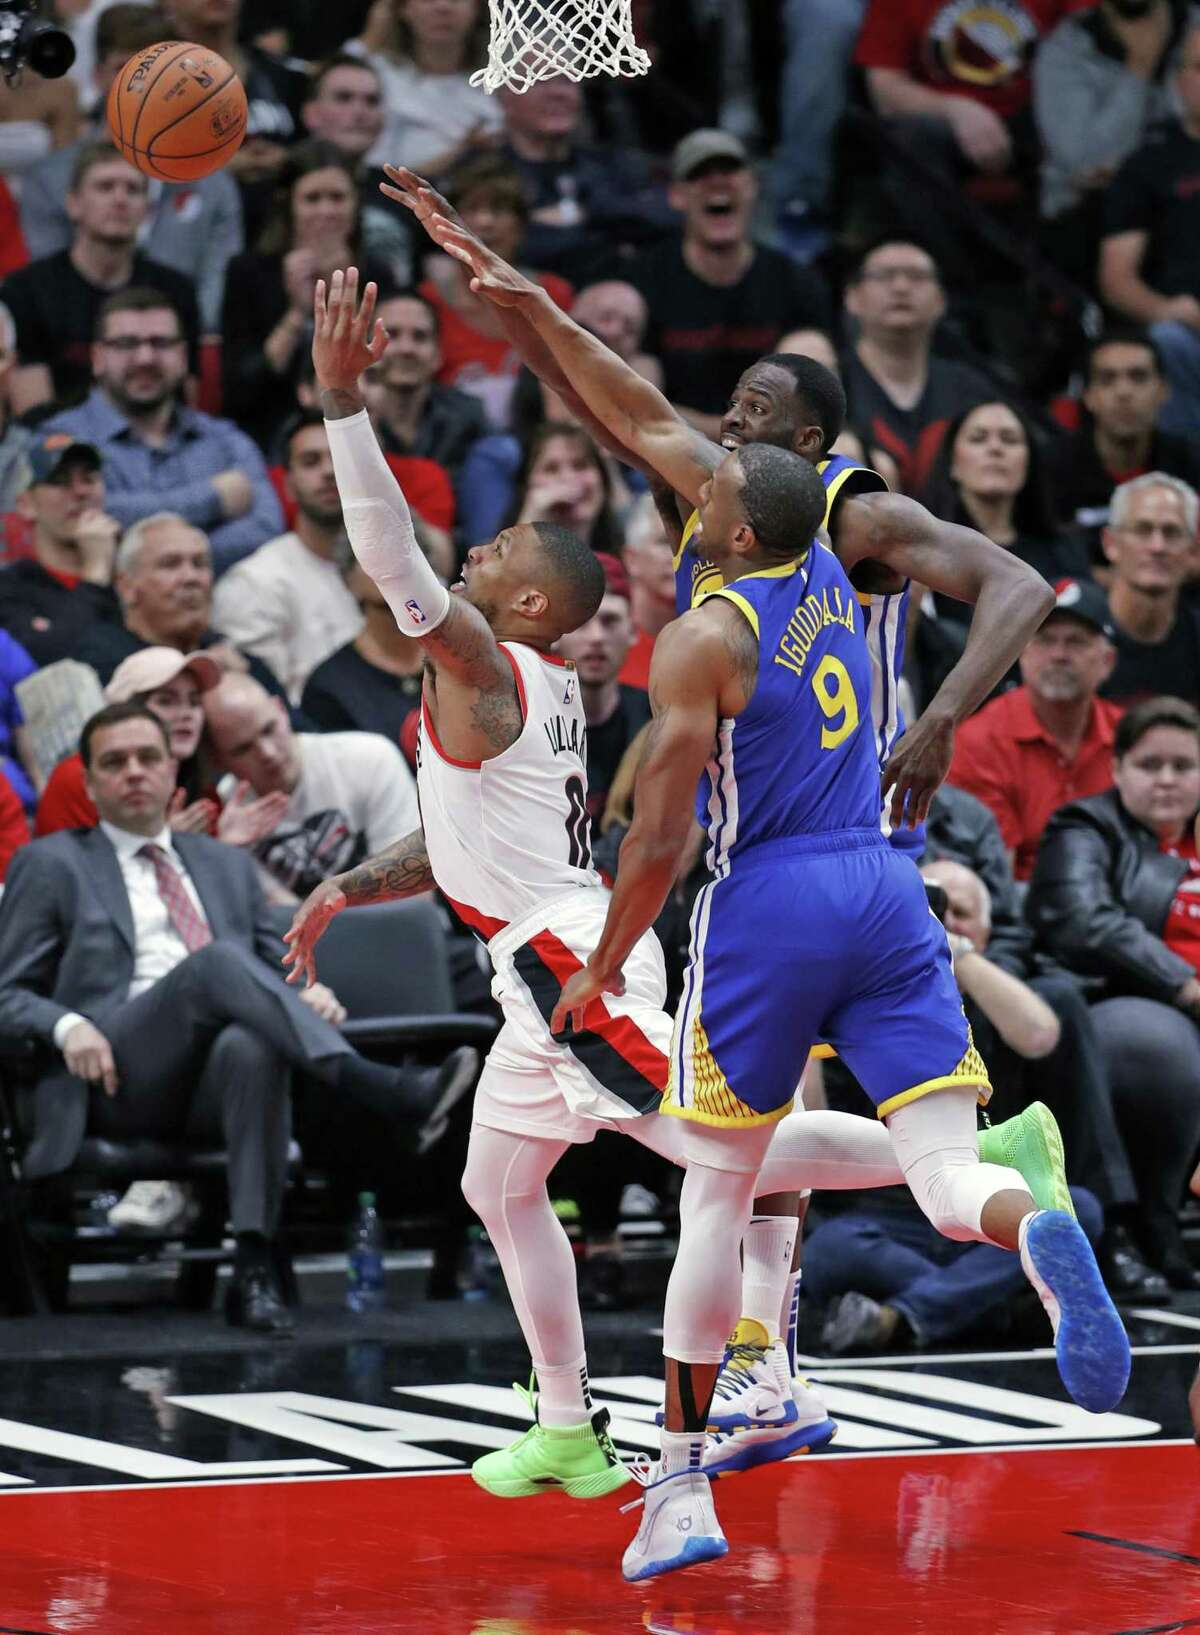 Golden State Warriors' Draymond Green and Andre Iguodala stop Portland Trail Blazers' Damian Lillard on a drive during Warriors' 110-99 win in Game 3 of the NBA Western Conference Finals at Moda Center in Portland, Oregon on Saturday, May 18, 2019.